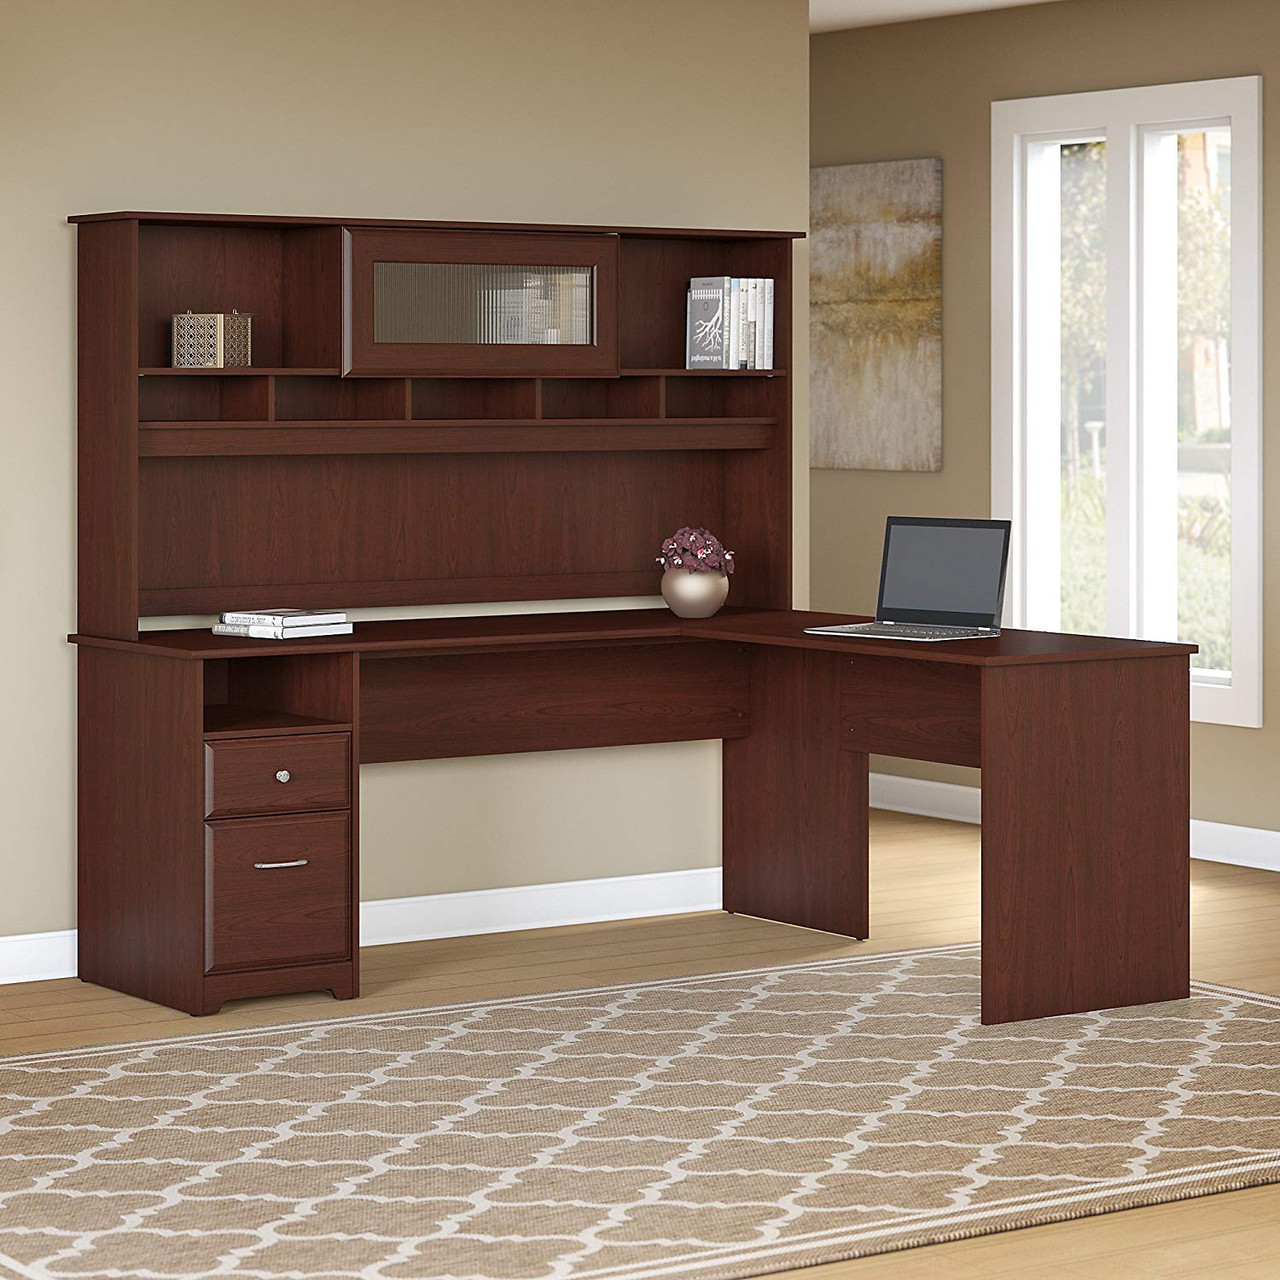 Bush Cab053hvc Cabot Collection 72 W L Shaped Computer Desk With Hutch And Drawers Free Shipping